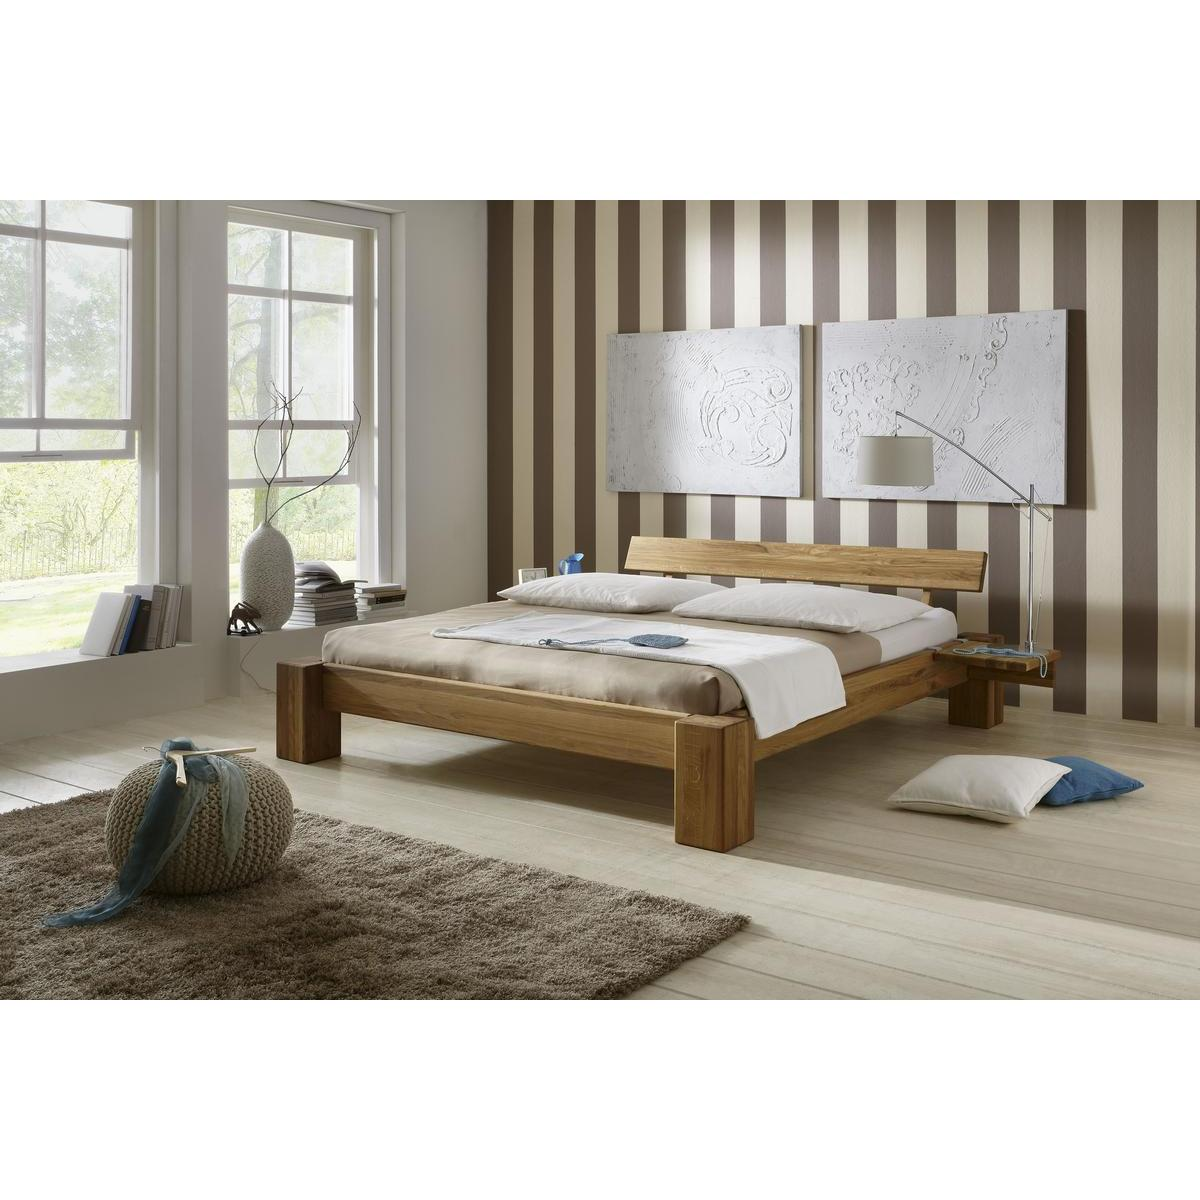 bett 180x200 massivholz bett x gunstig wand e en bett x. Black Bedroom Furniture Sets. Home Design Ideas